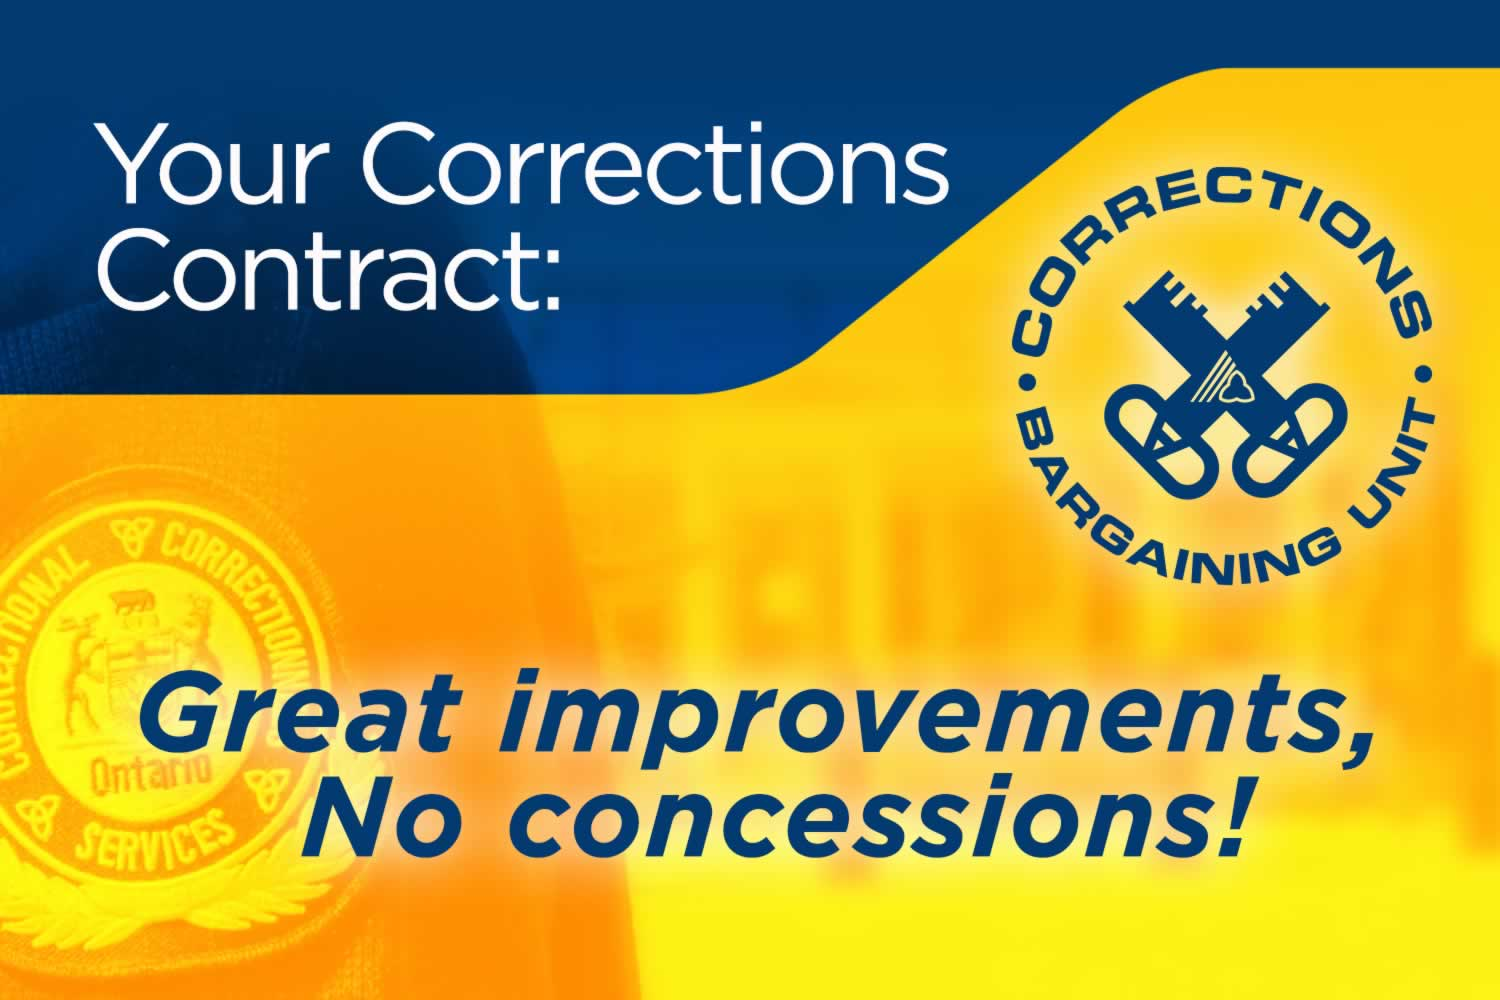 Your contract: Great improvements, no concessions! Corrections Bargaining Unit